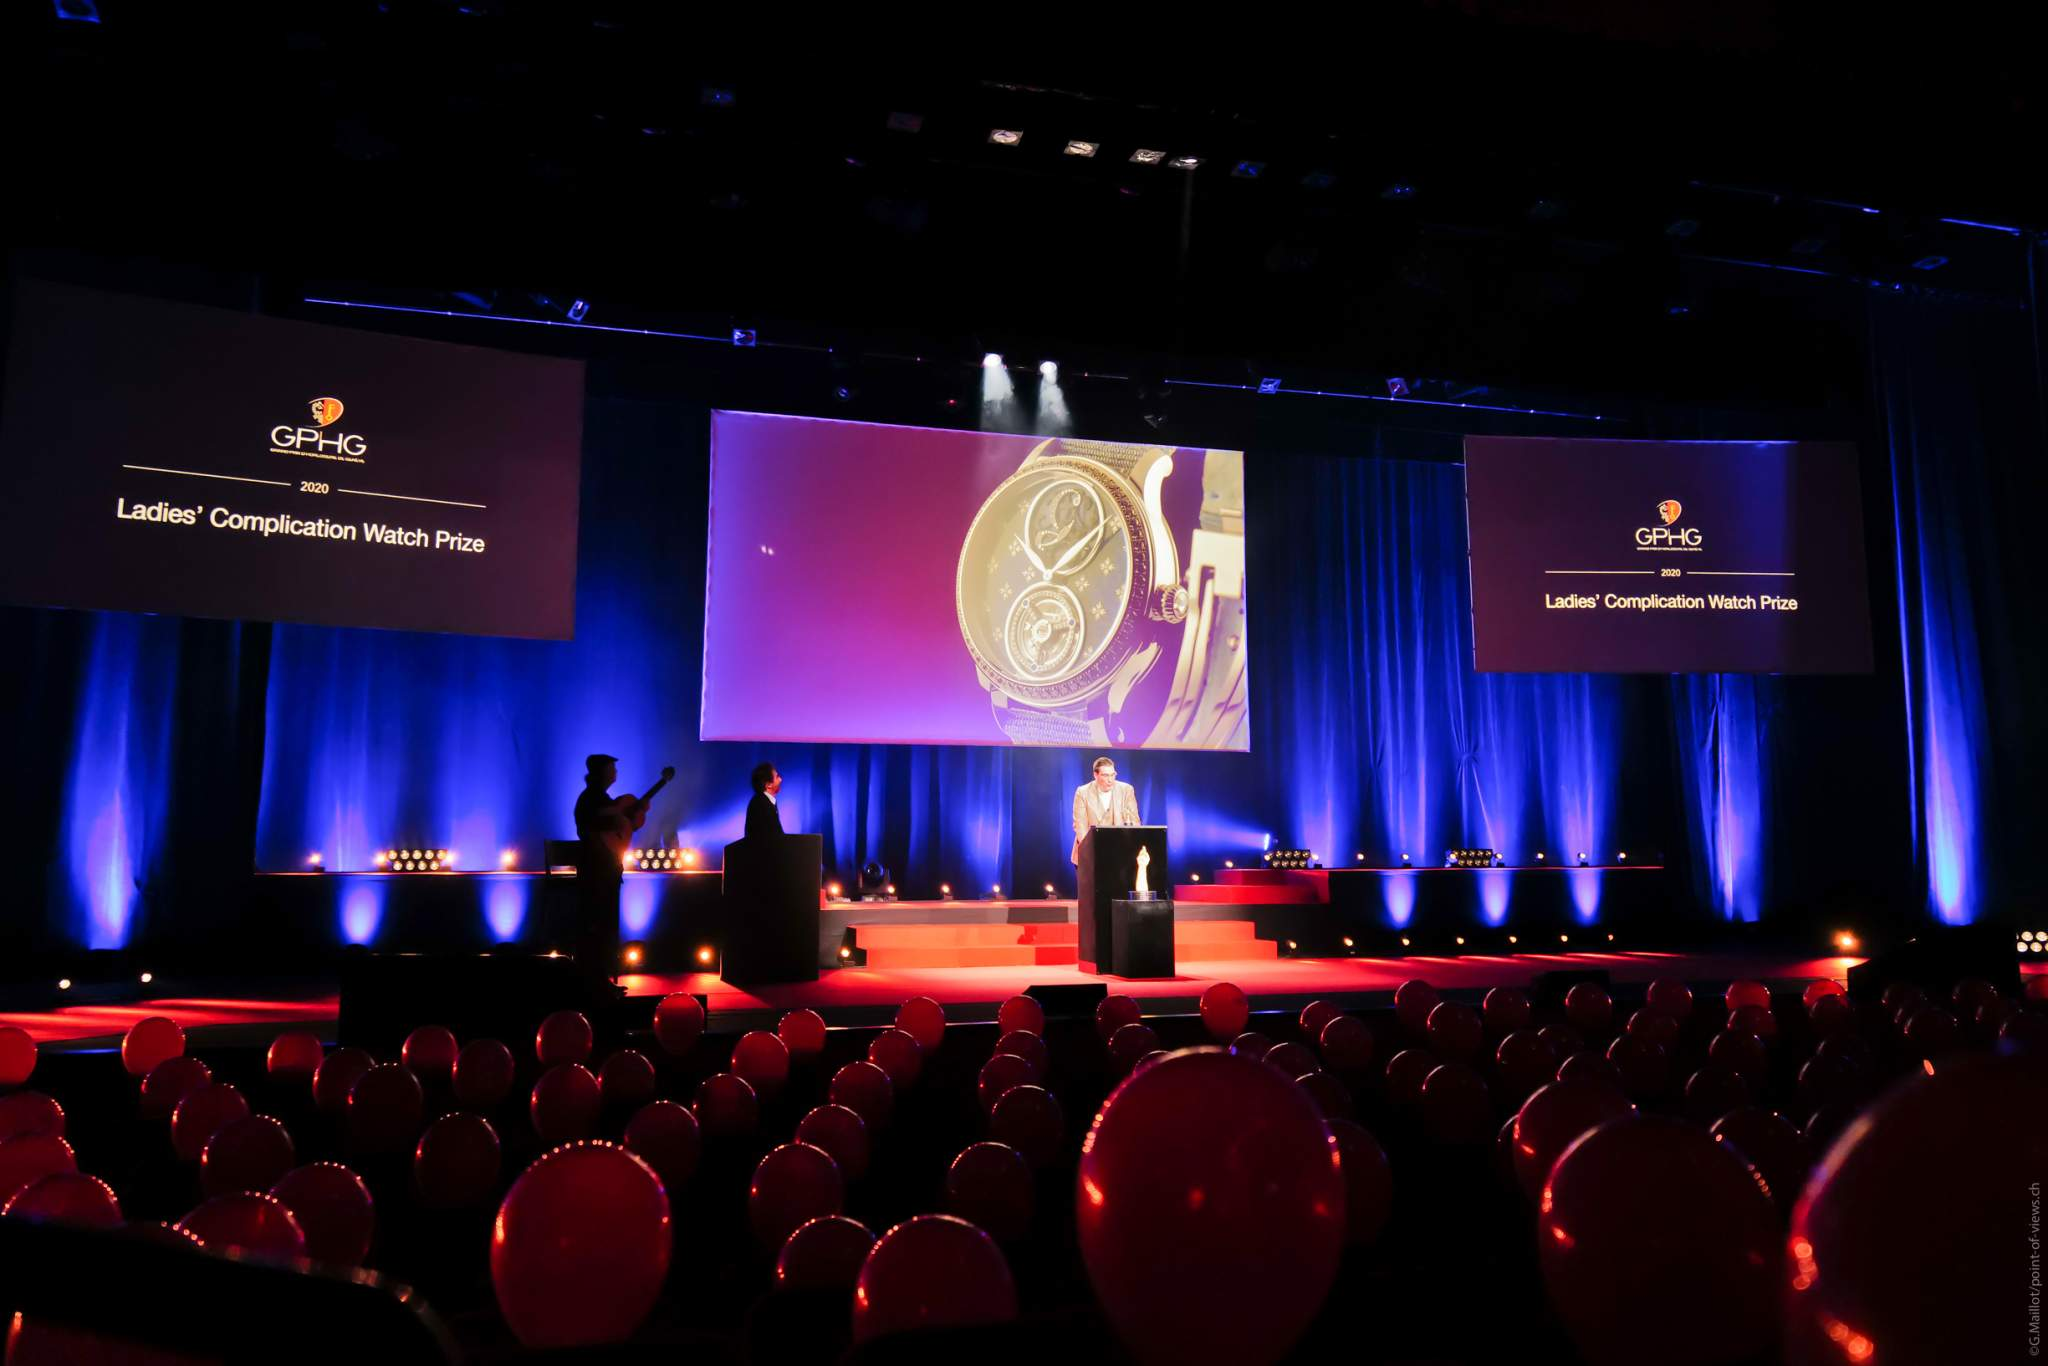 Patrick A. Ulm, CEO of Charles Girardier, winner of the Ladies' Complication Watch Prize 2020